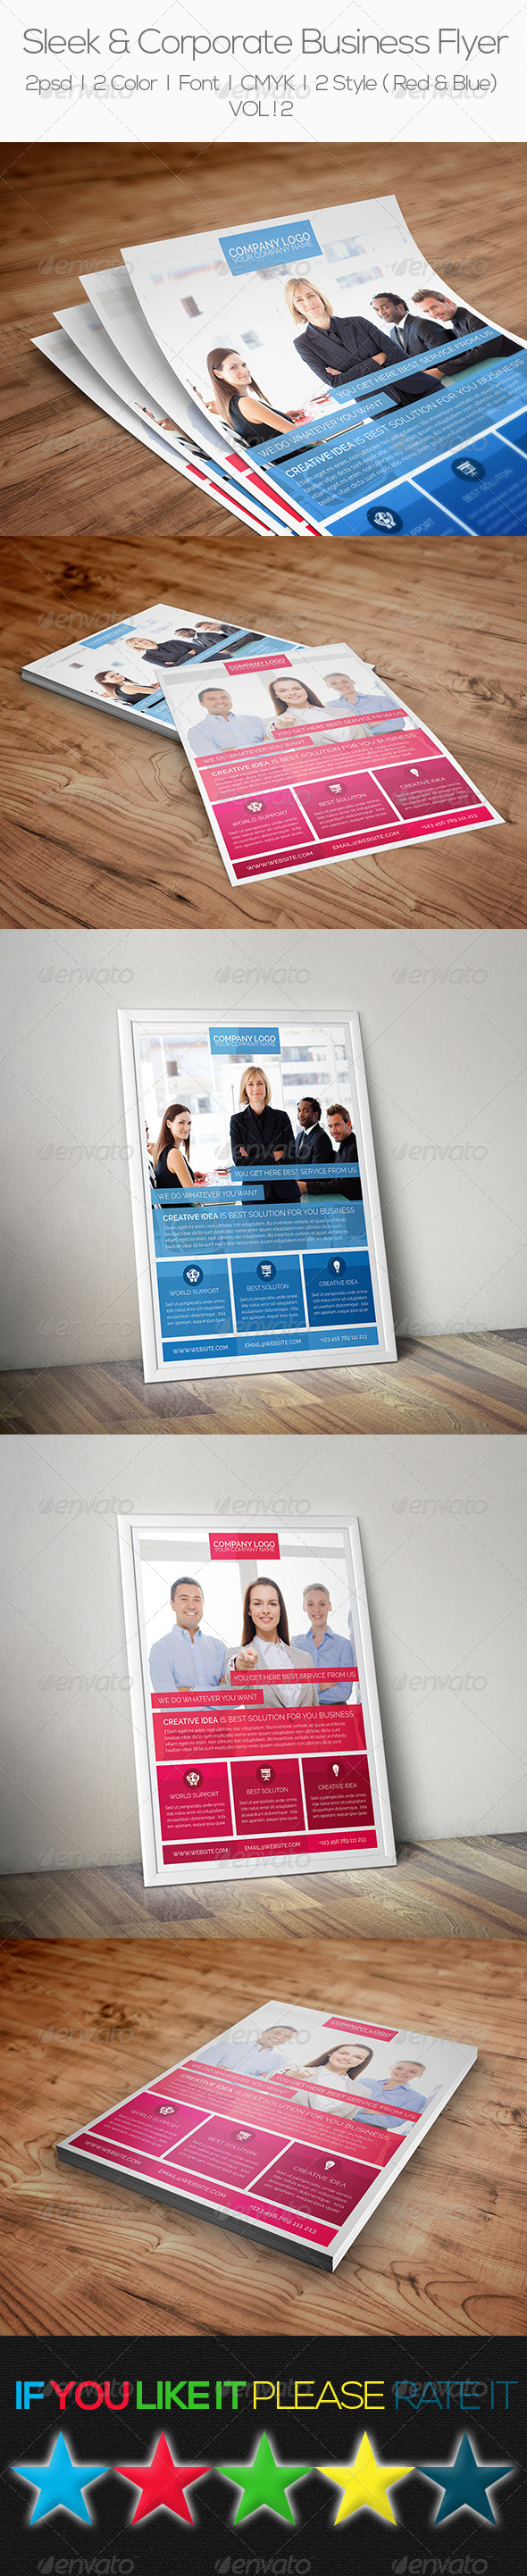 GraphicRiver Sleek & Corporate Business Flyer 7879408